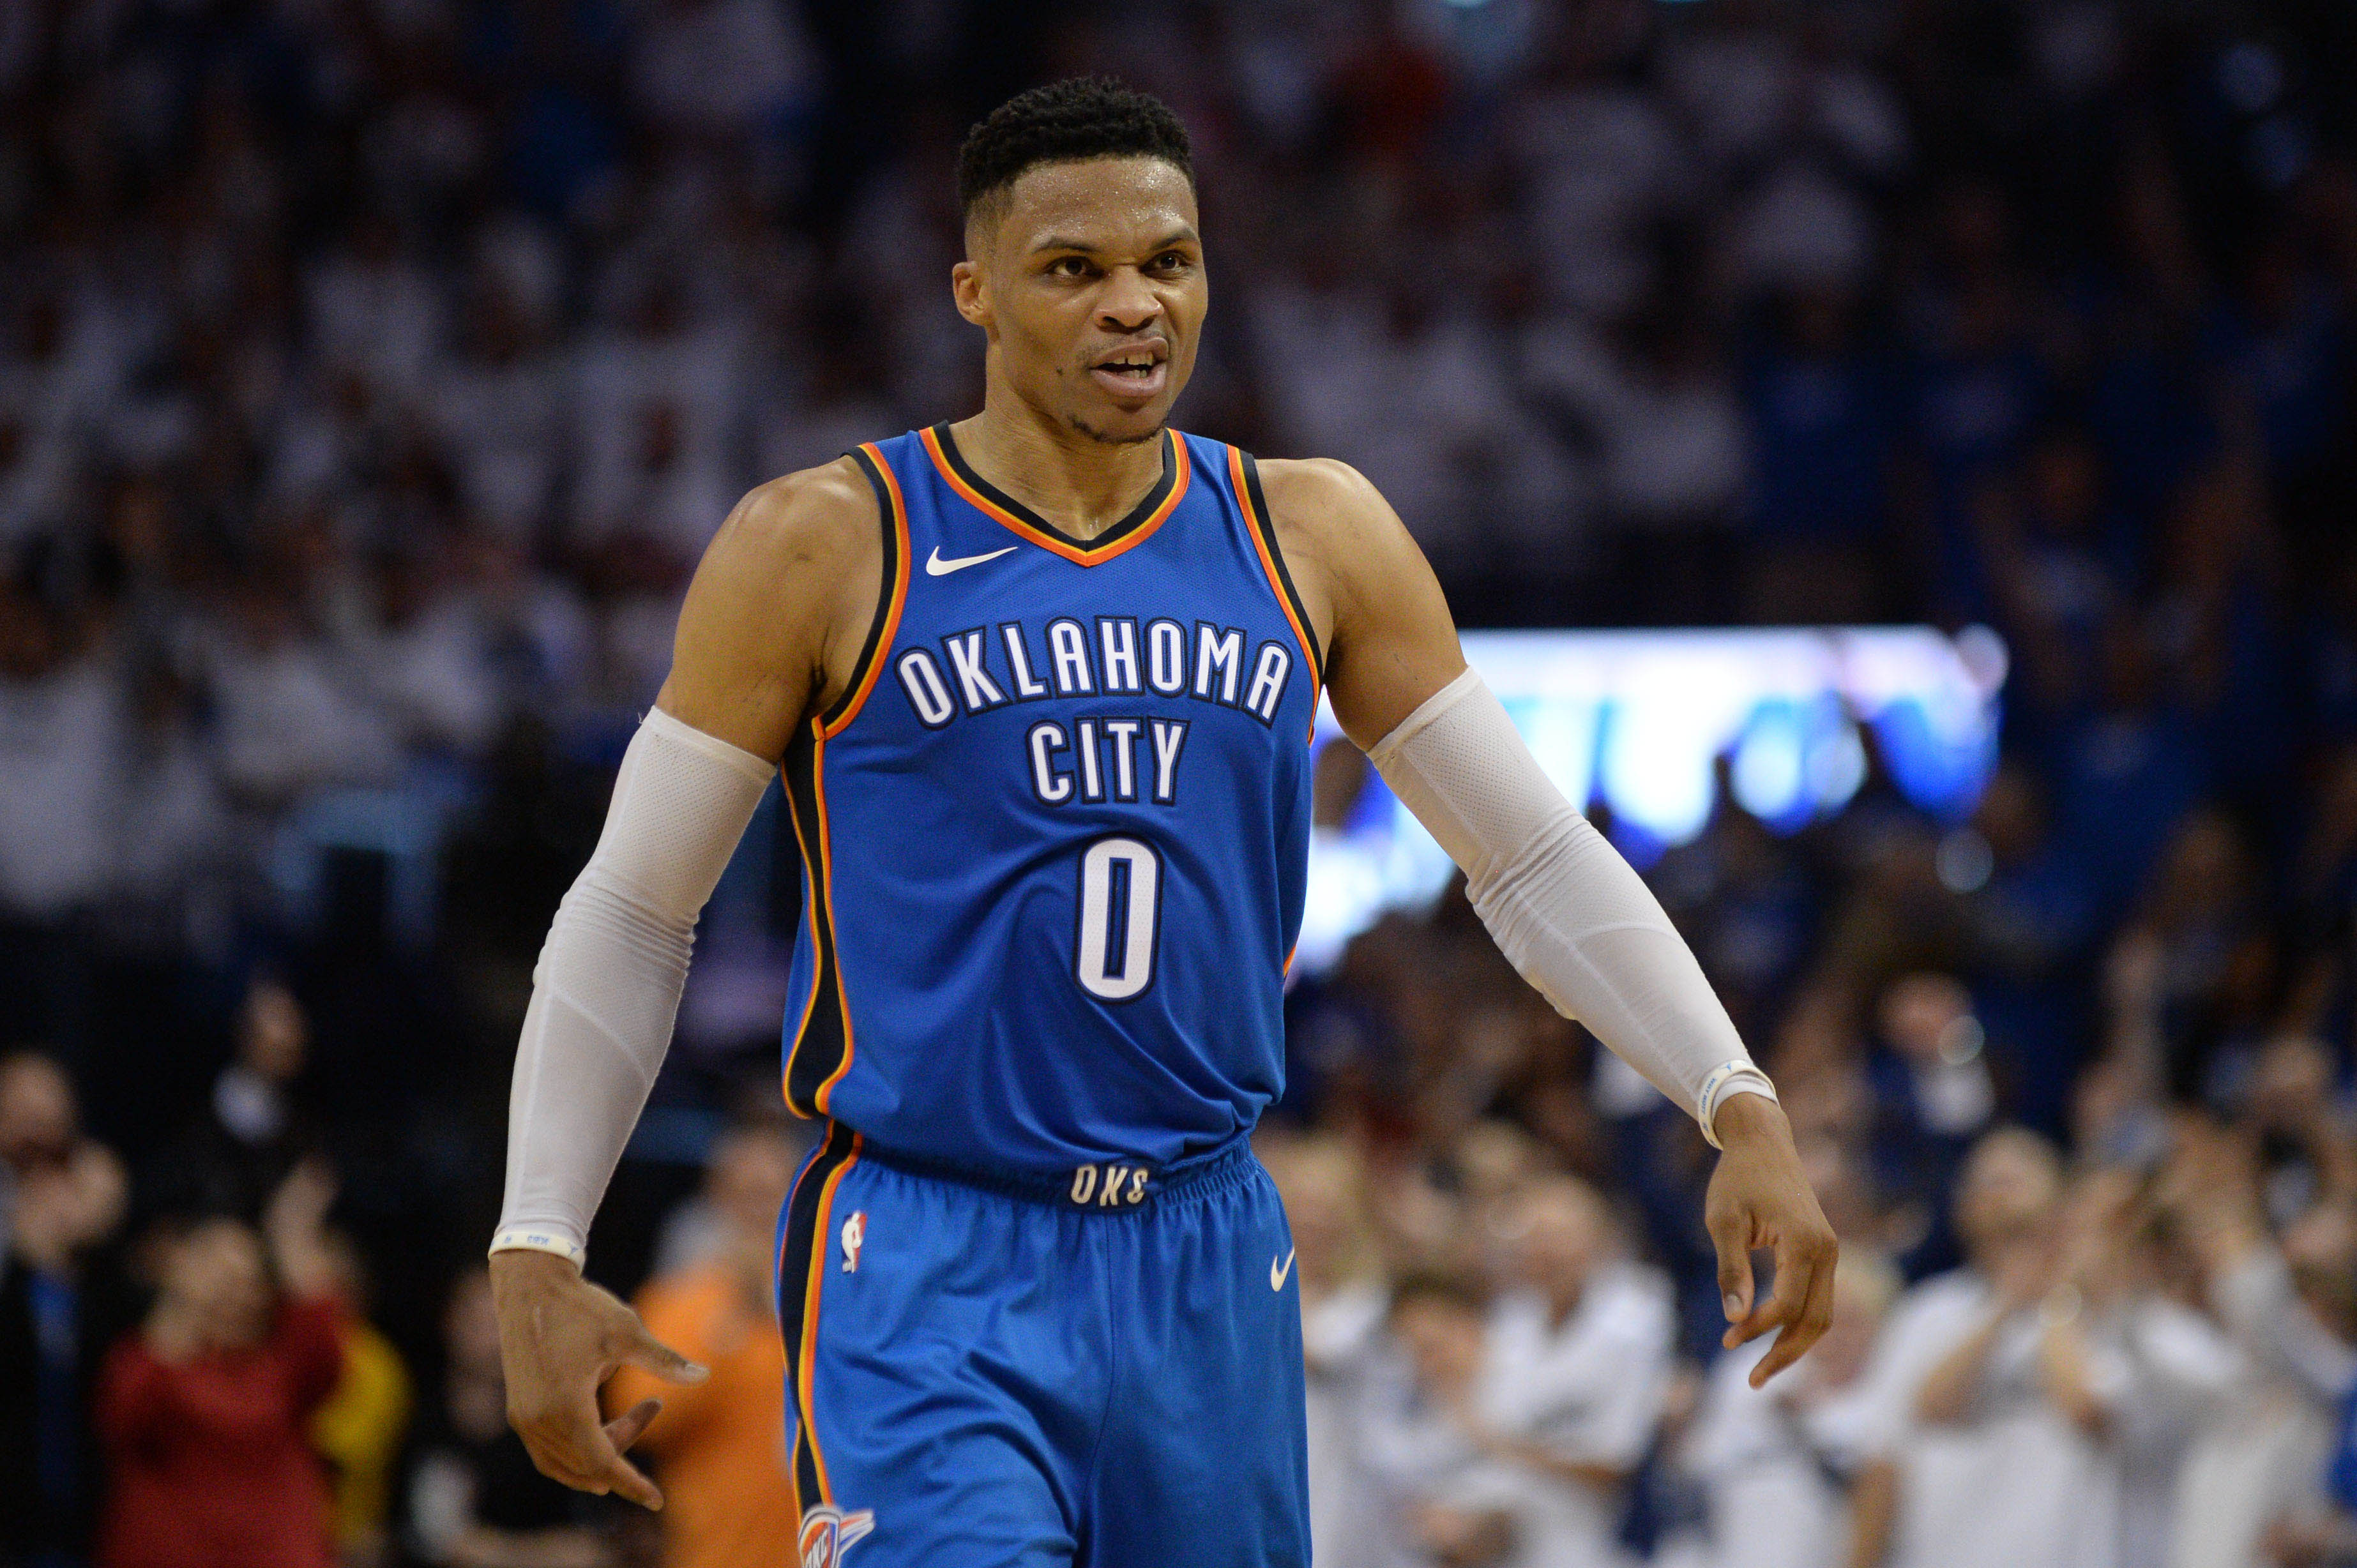 Apr 25, 2018; Oklahoma City, OK, USA; Oklahoma City Thunder guard Russell Westbrook (0) reacts after a play against the Utah Jazz during the fourth quarter in game five of the first round of the 2018 NBA Playoffs at Chesapeake Energy Arena. Mandatory Credit: Mark D. Smith-USA TODAY Sports